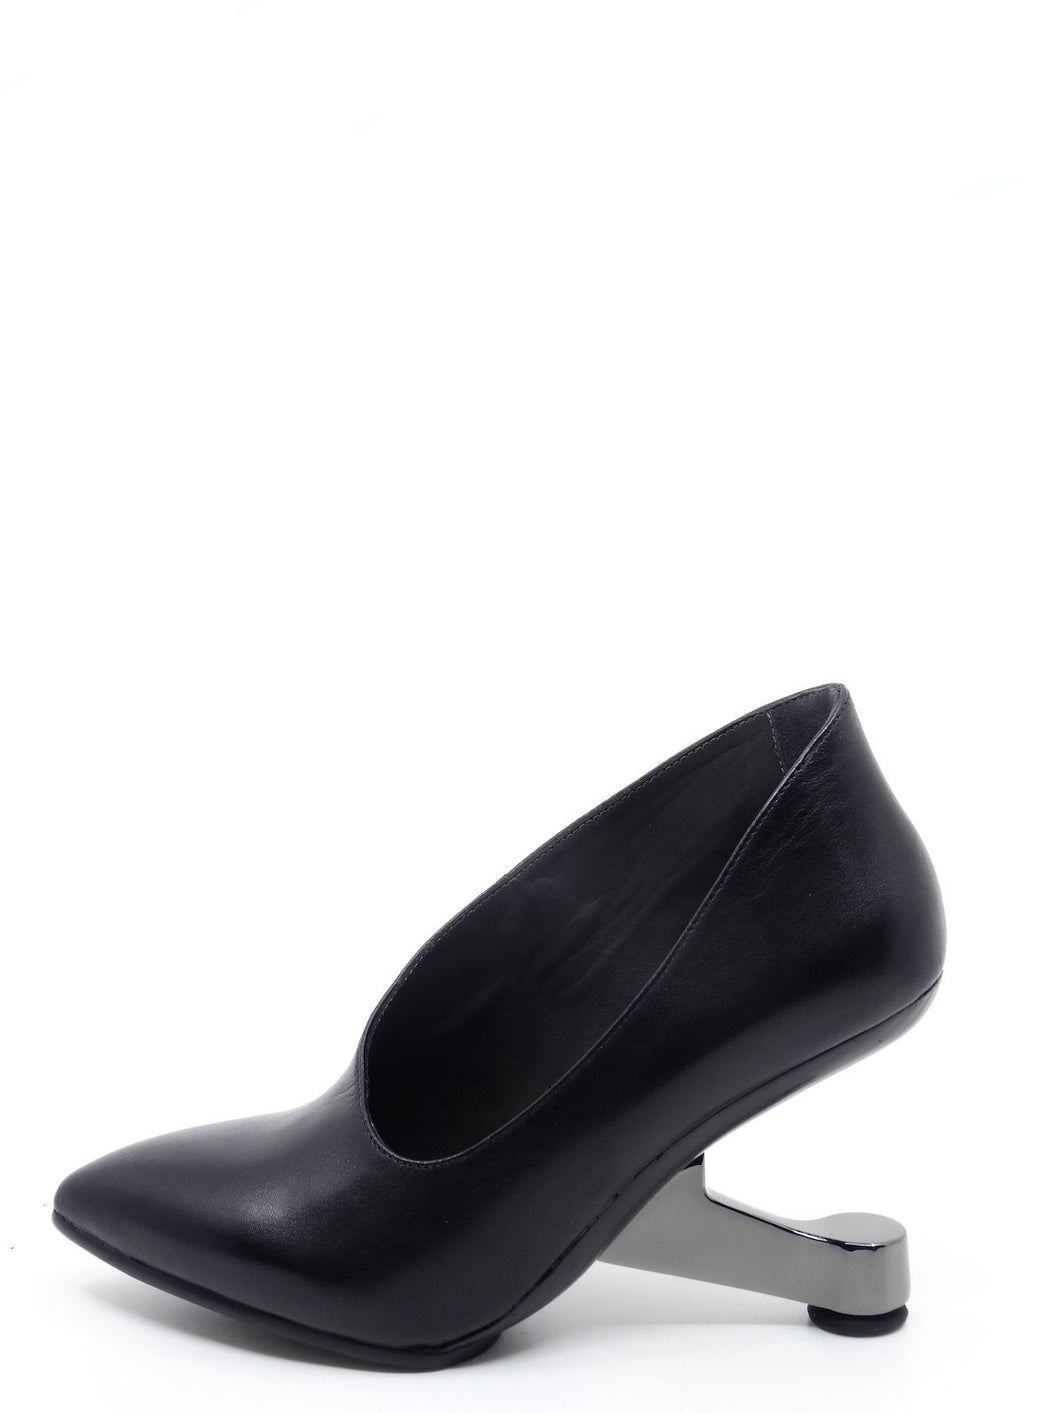 United Nude Eamz Ellie Black Leather